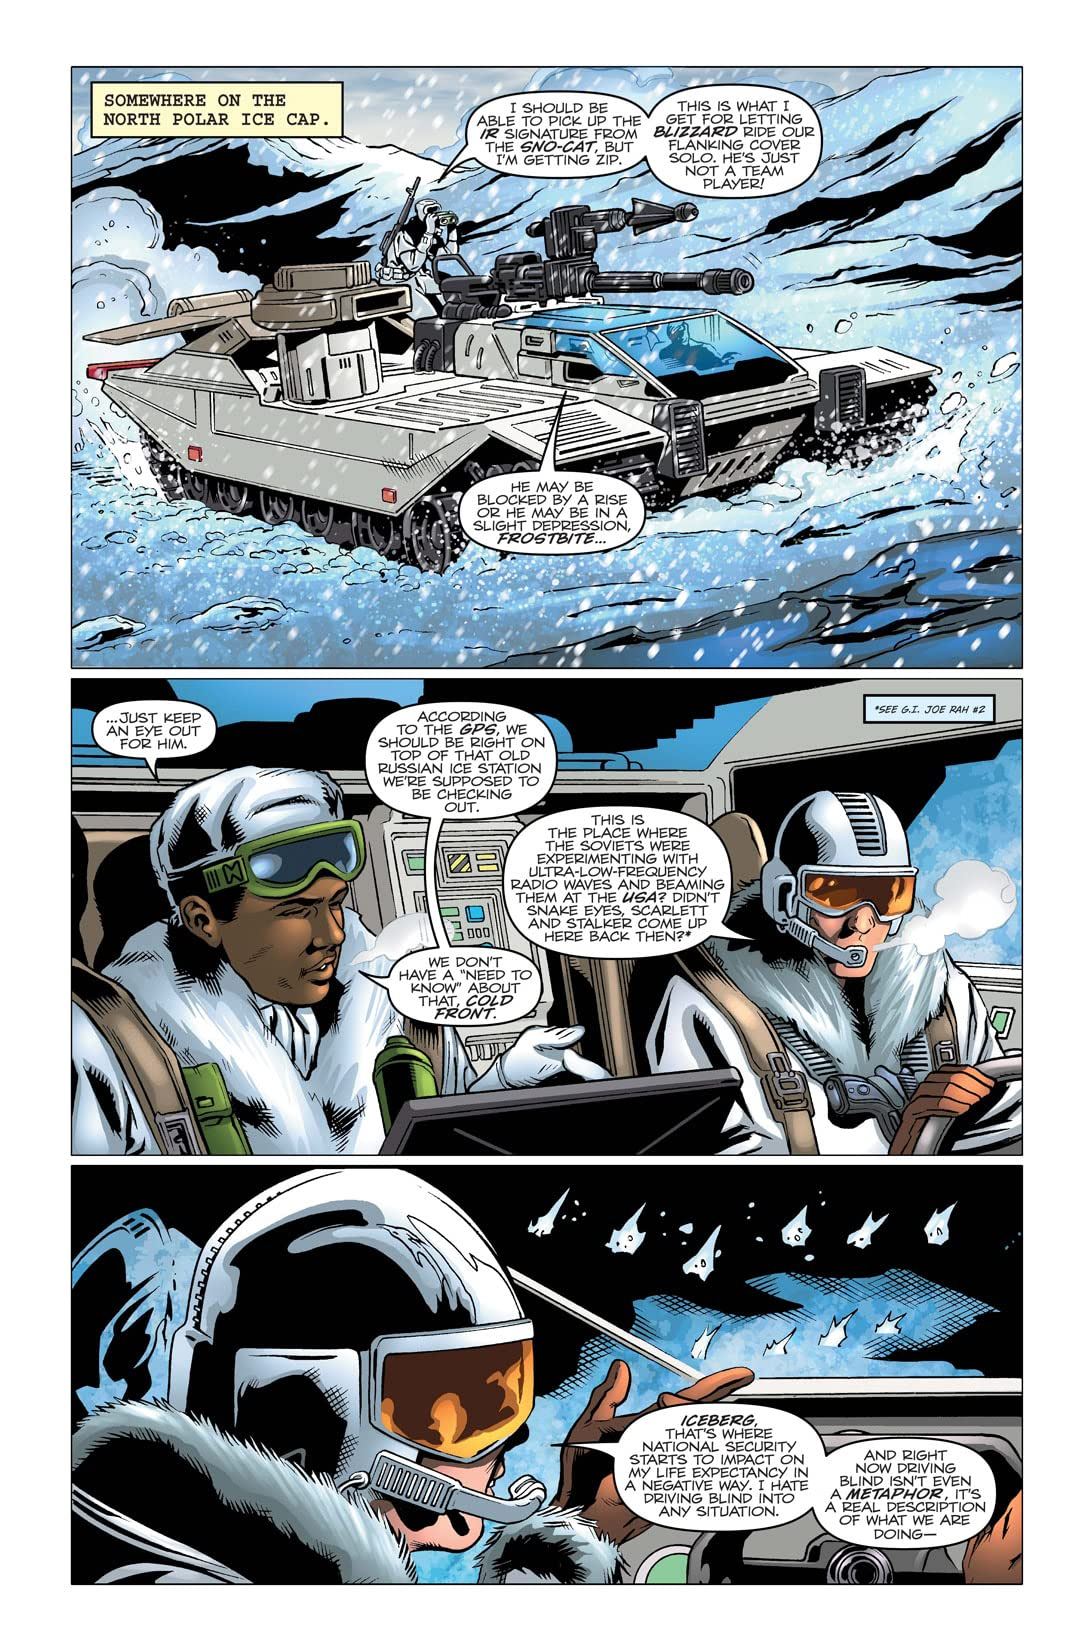 G.I. Joe: A Real American Hero #167